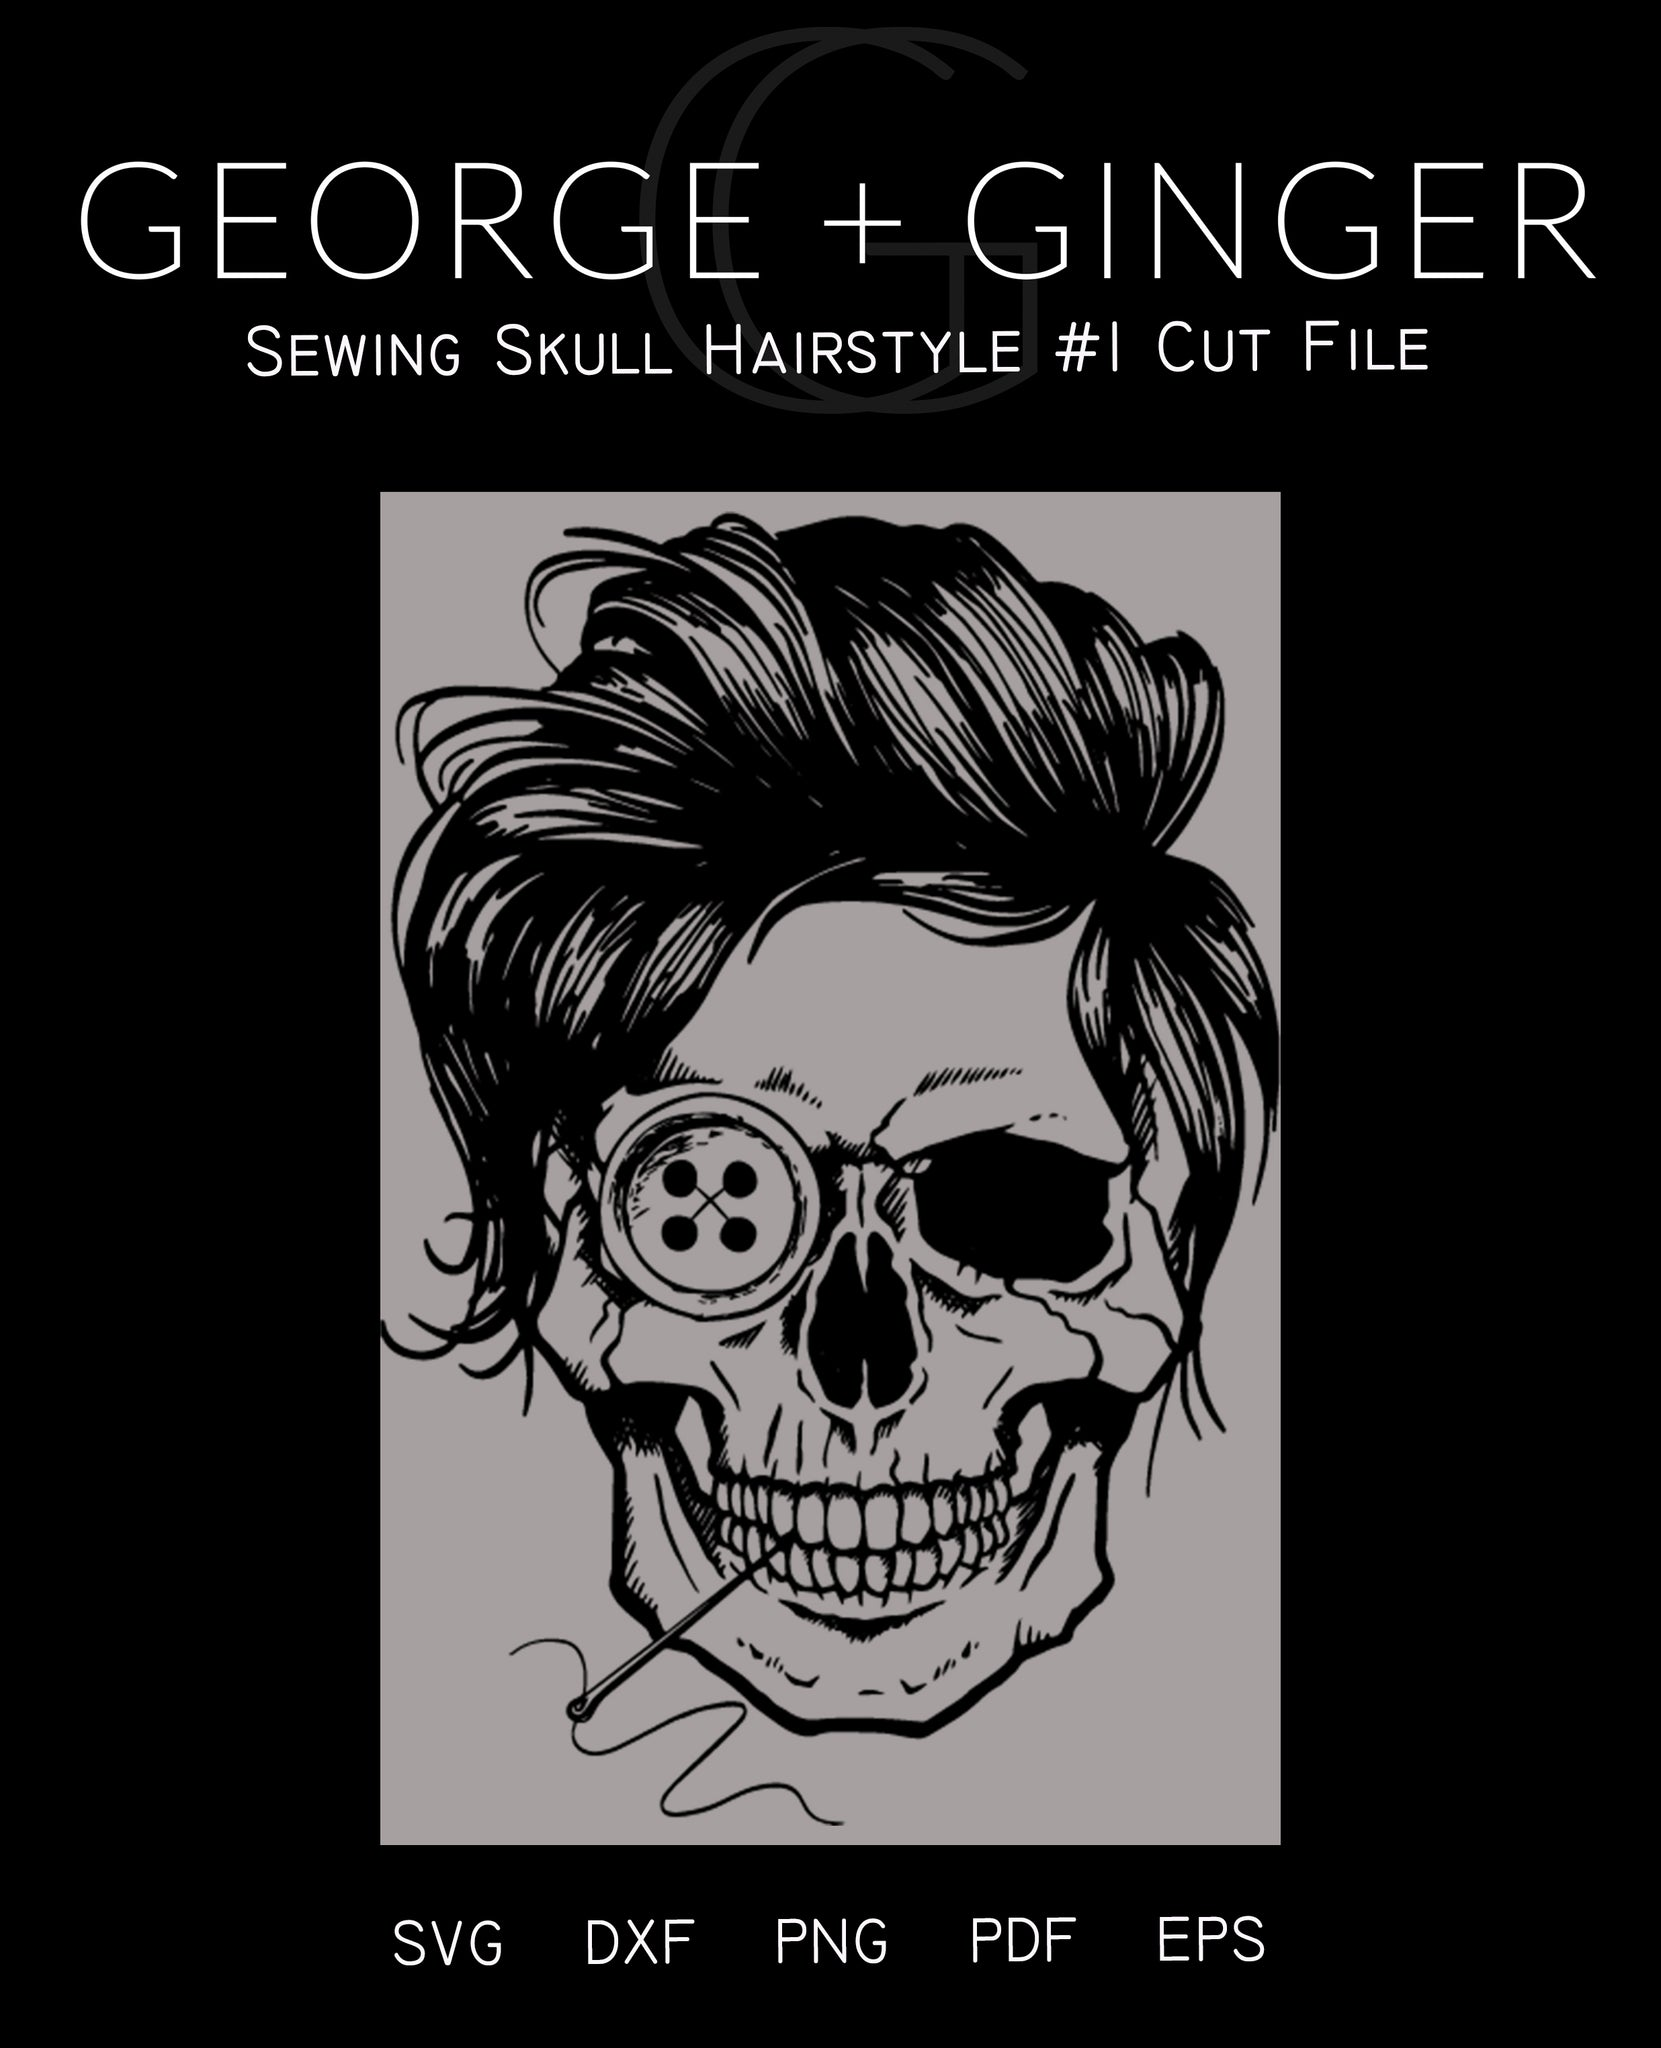 Sewing Skull (Hairstyle #1) Digital Cut File